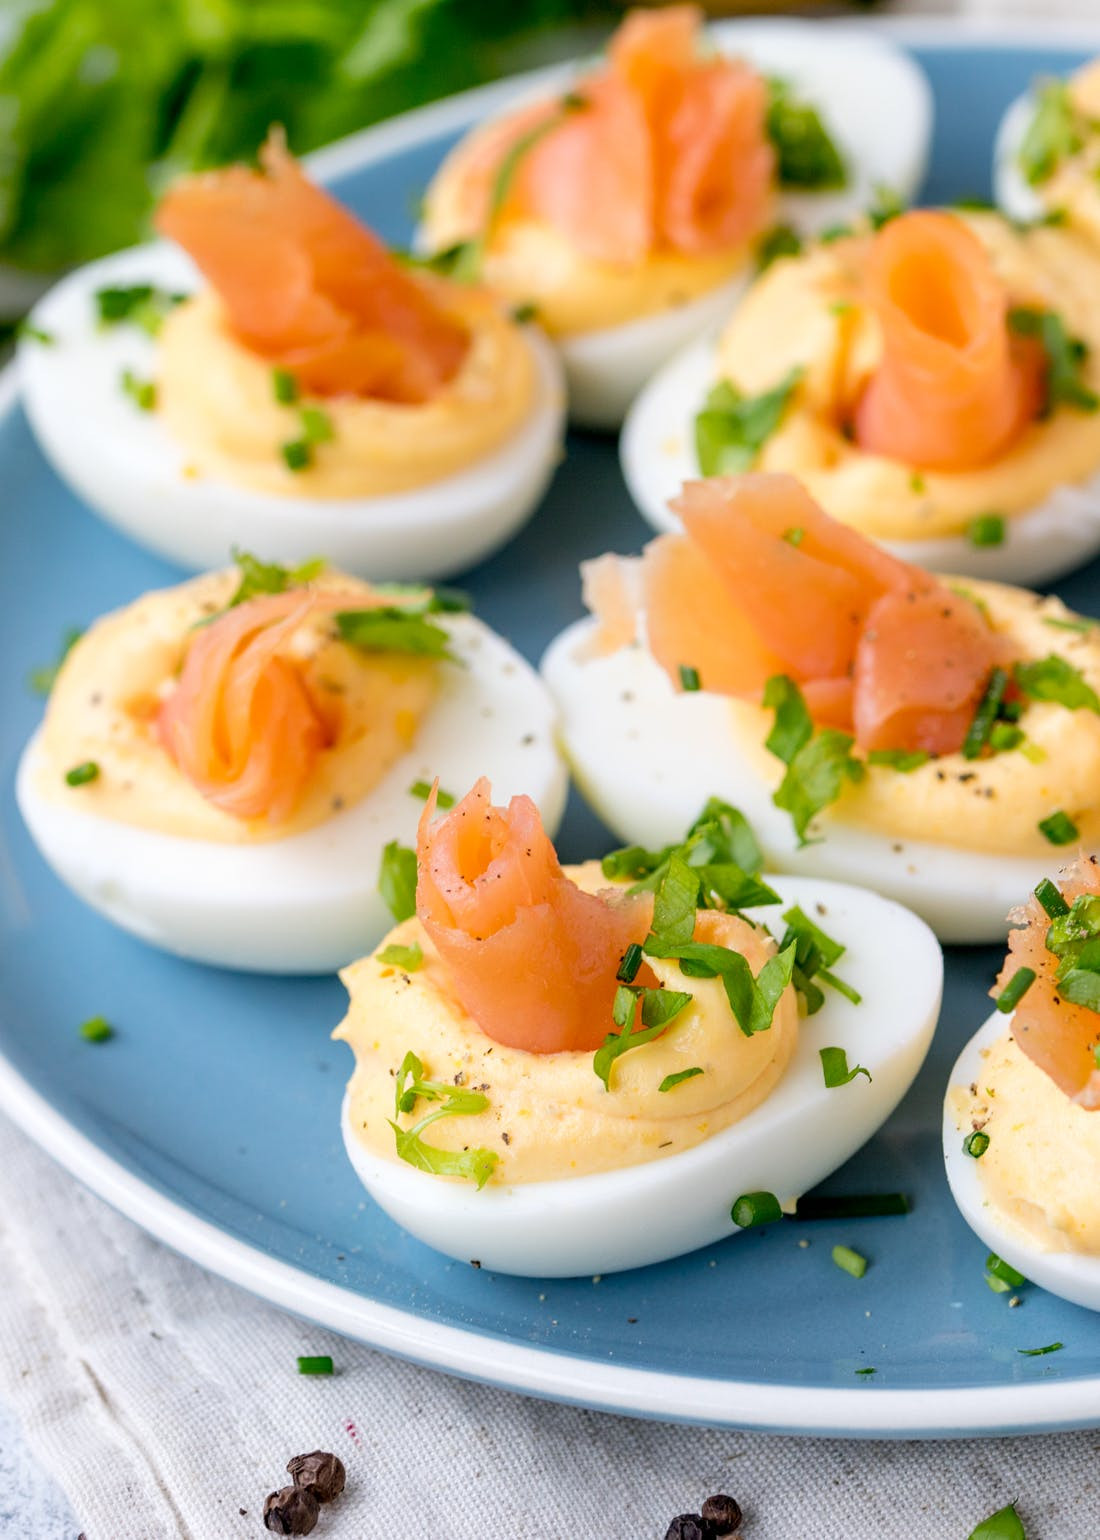 Smoked Salmon Deviled Eggs  Try Our Low Carb Smoked Salmon Deviled Eggs Recipe